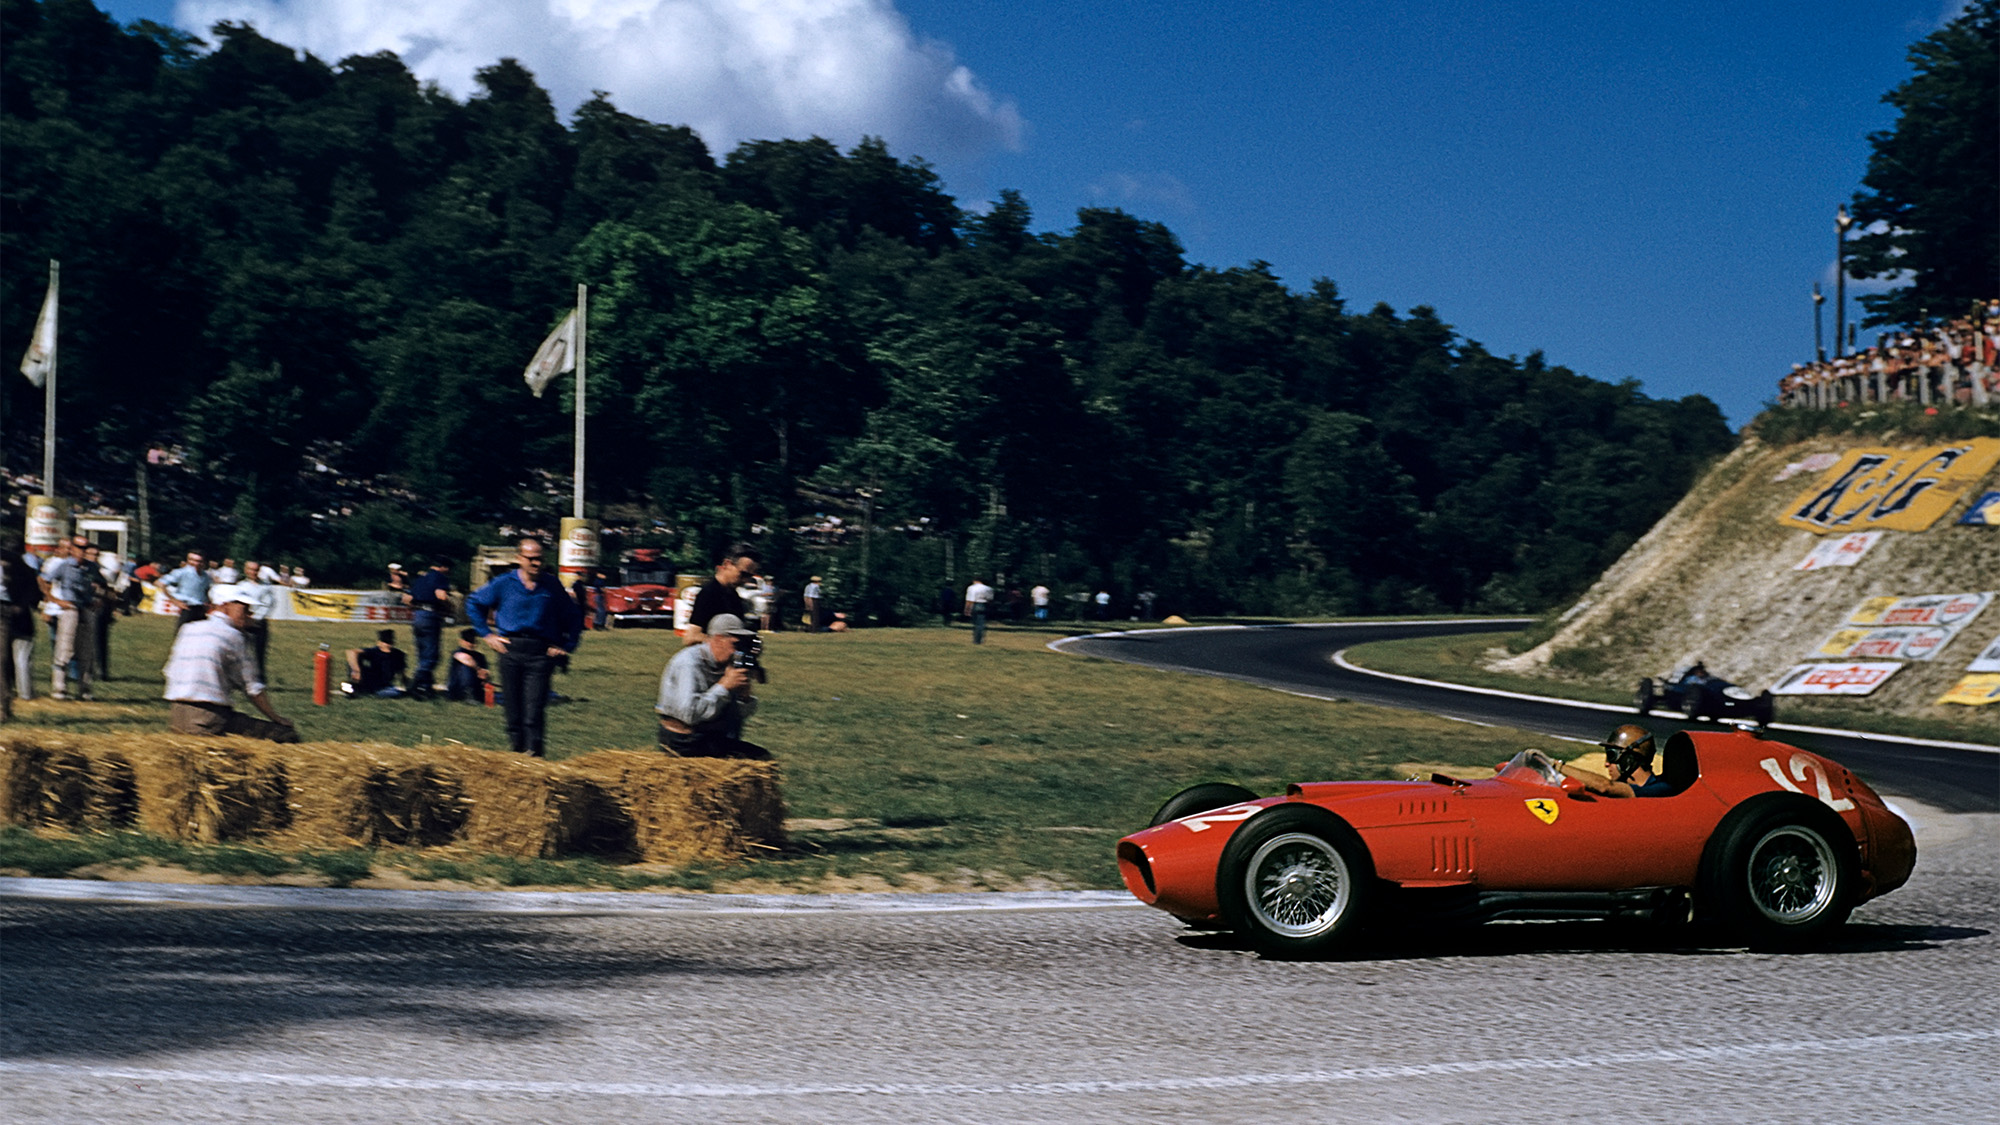 Peter Collins in the Ferrari 801 during the 1957 French Grand Prix at Rouen-Les-Essarts